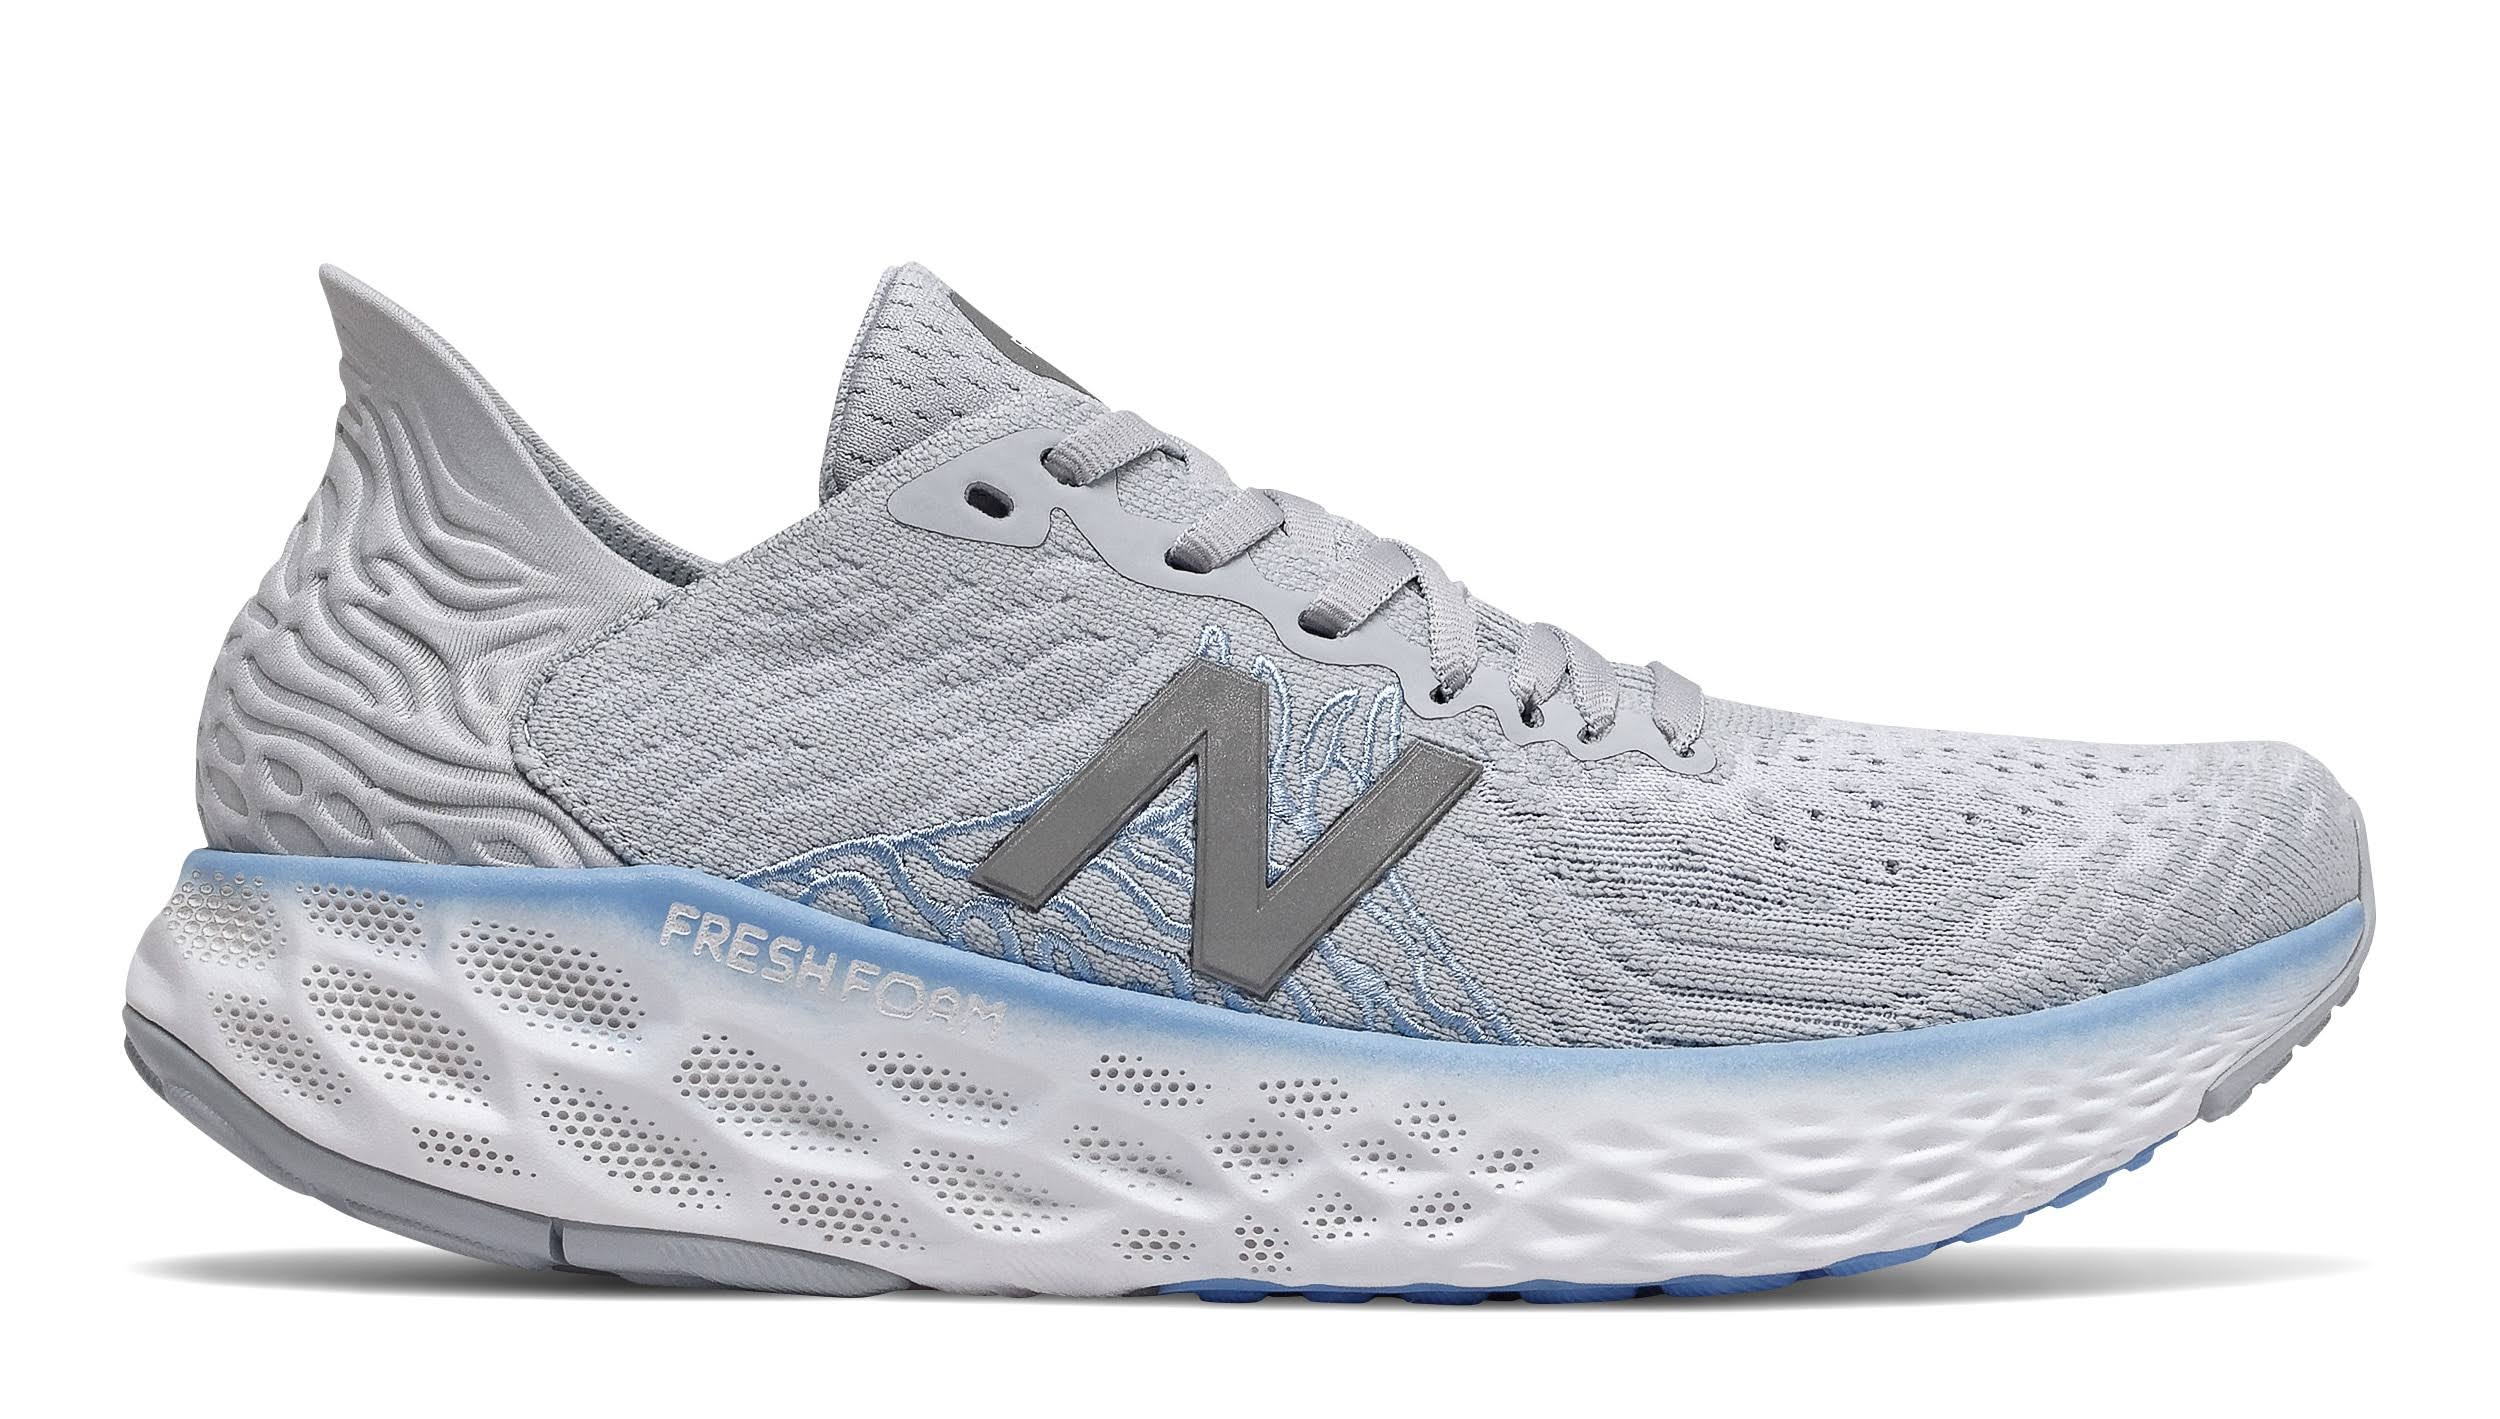 New Balance Women's 1080v10 Fresh Foam Running Shoe